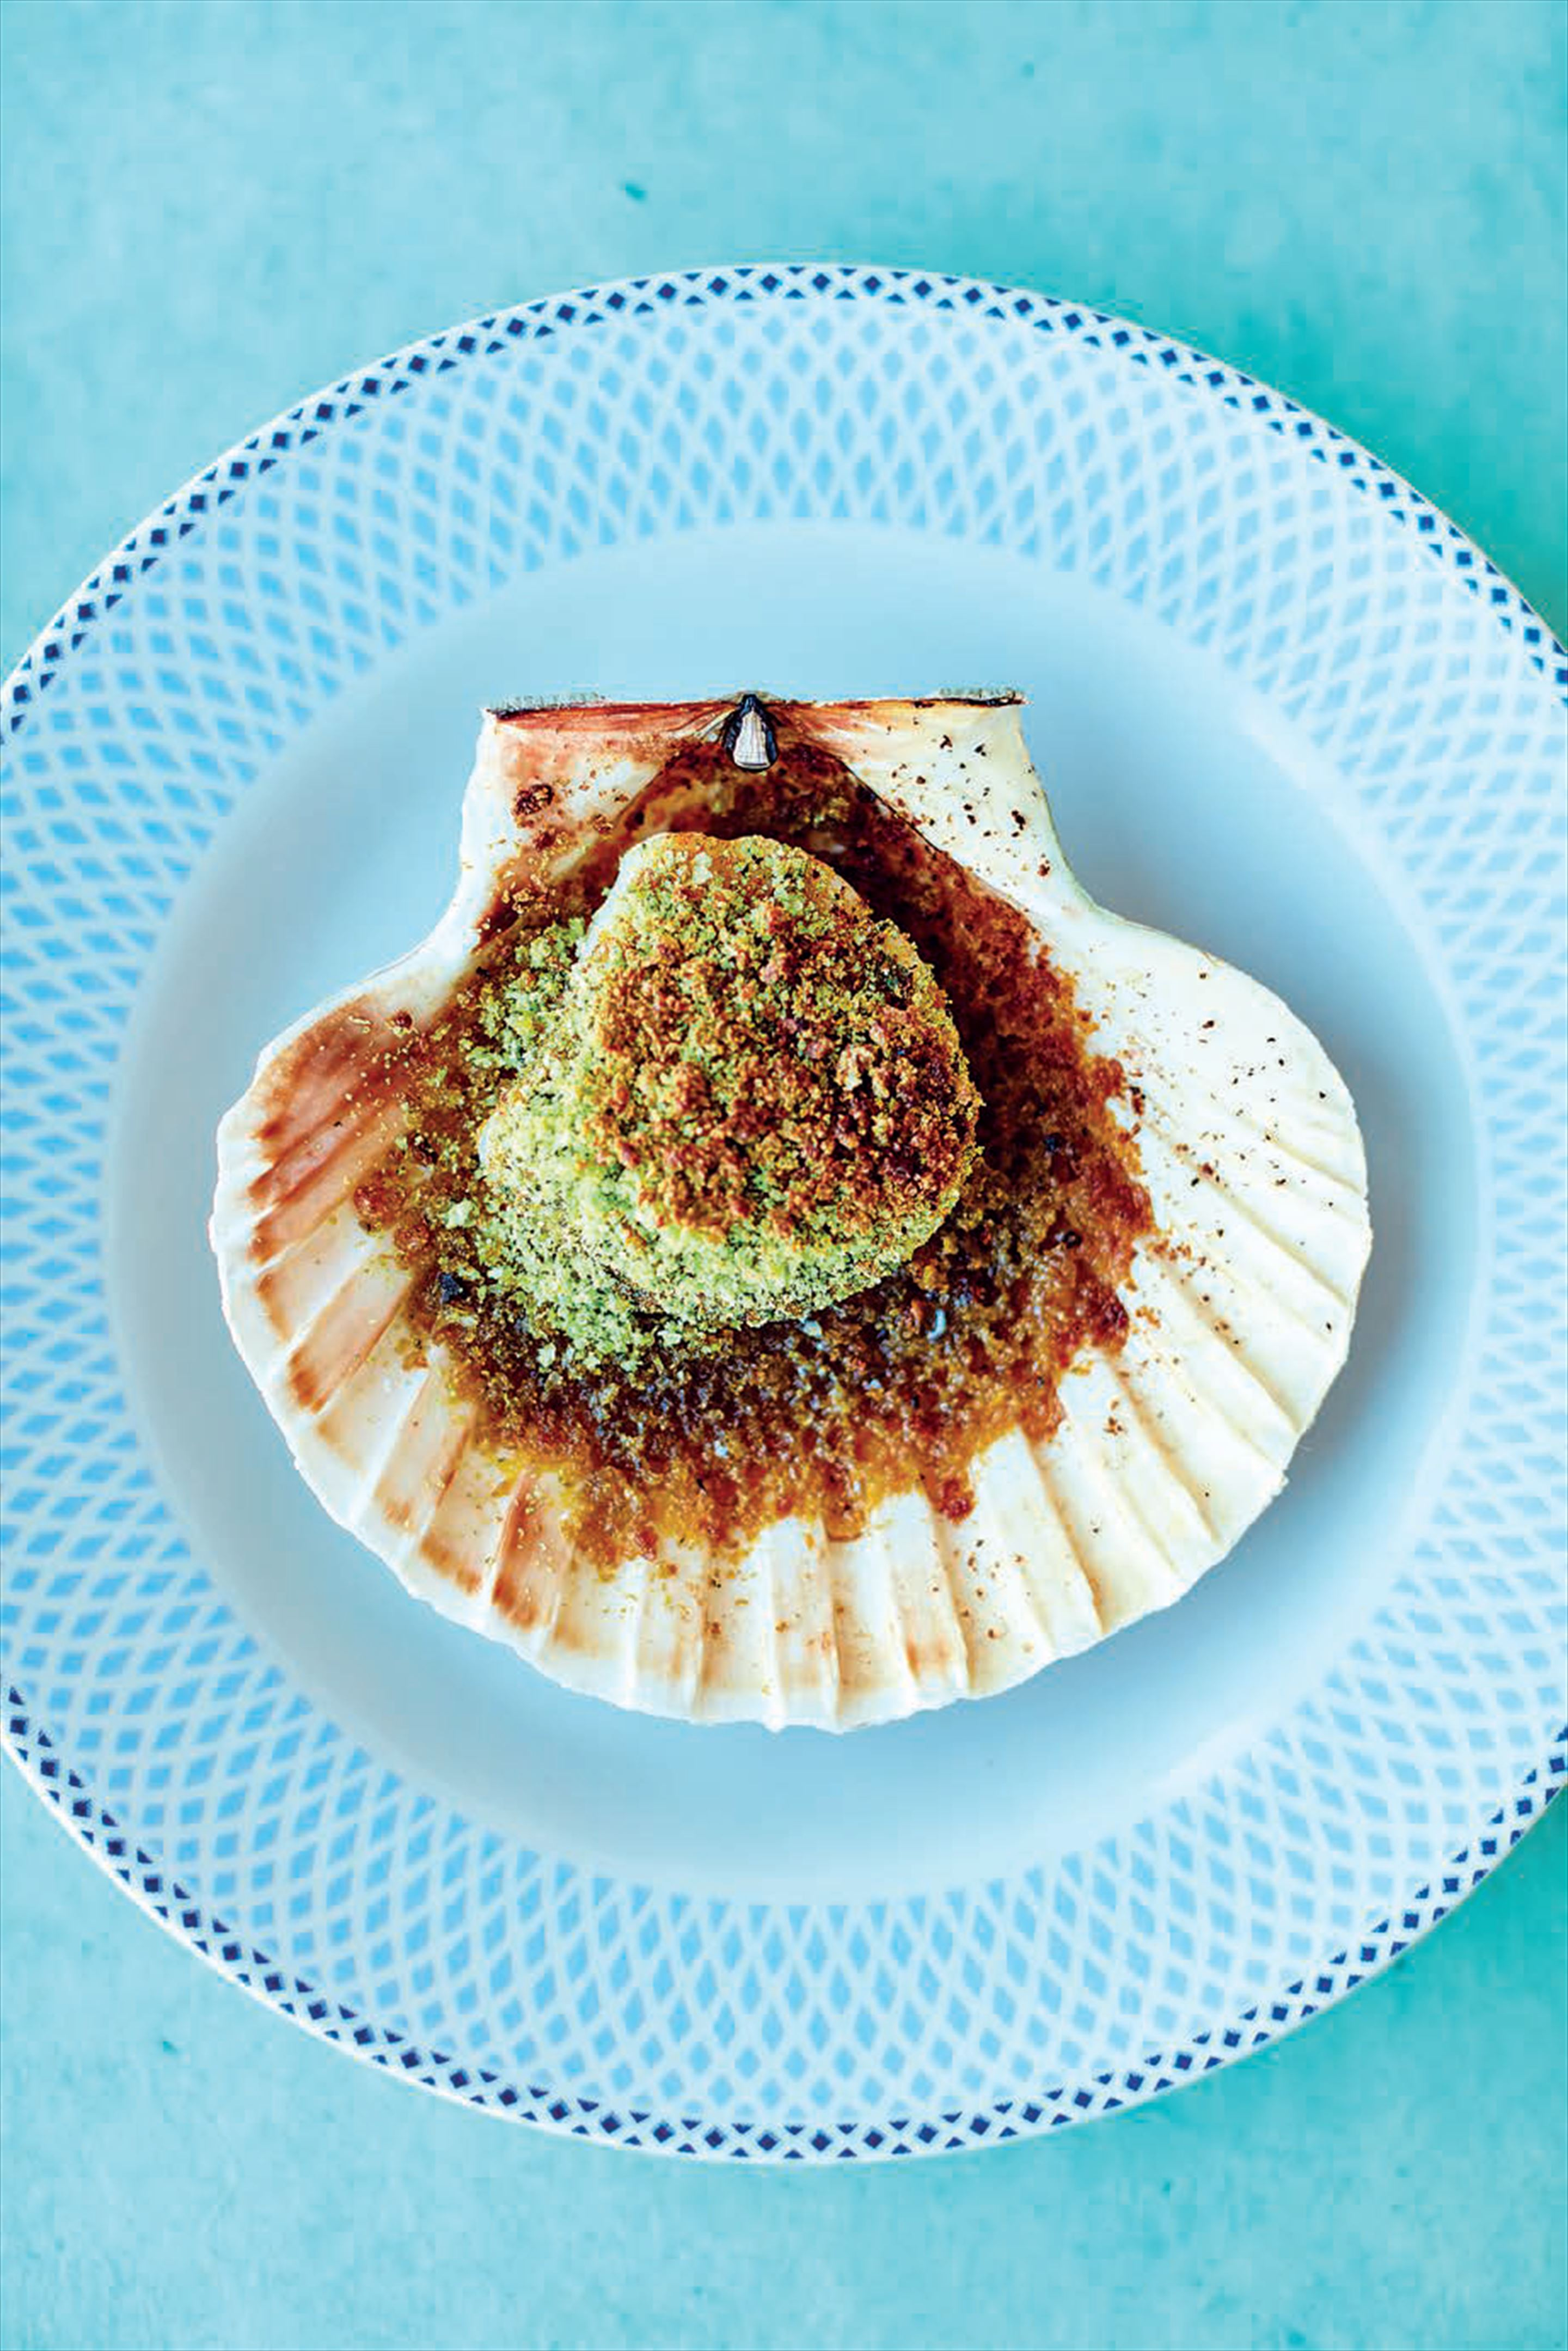 Scallops with cheddar crumbs, smoked paprika and coriander butter